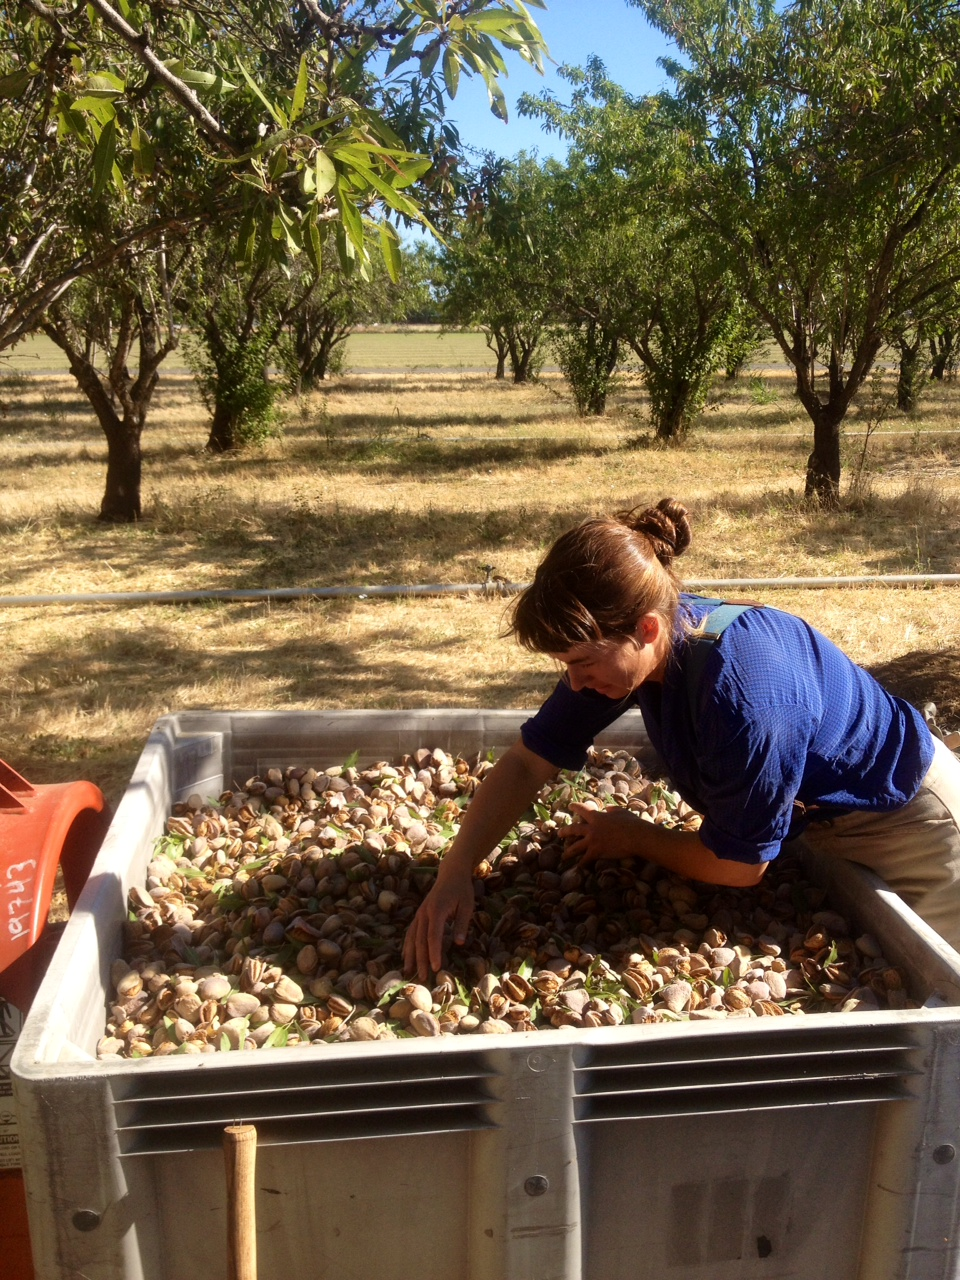 May sorting almonds.